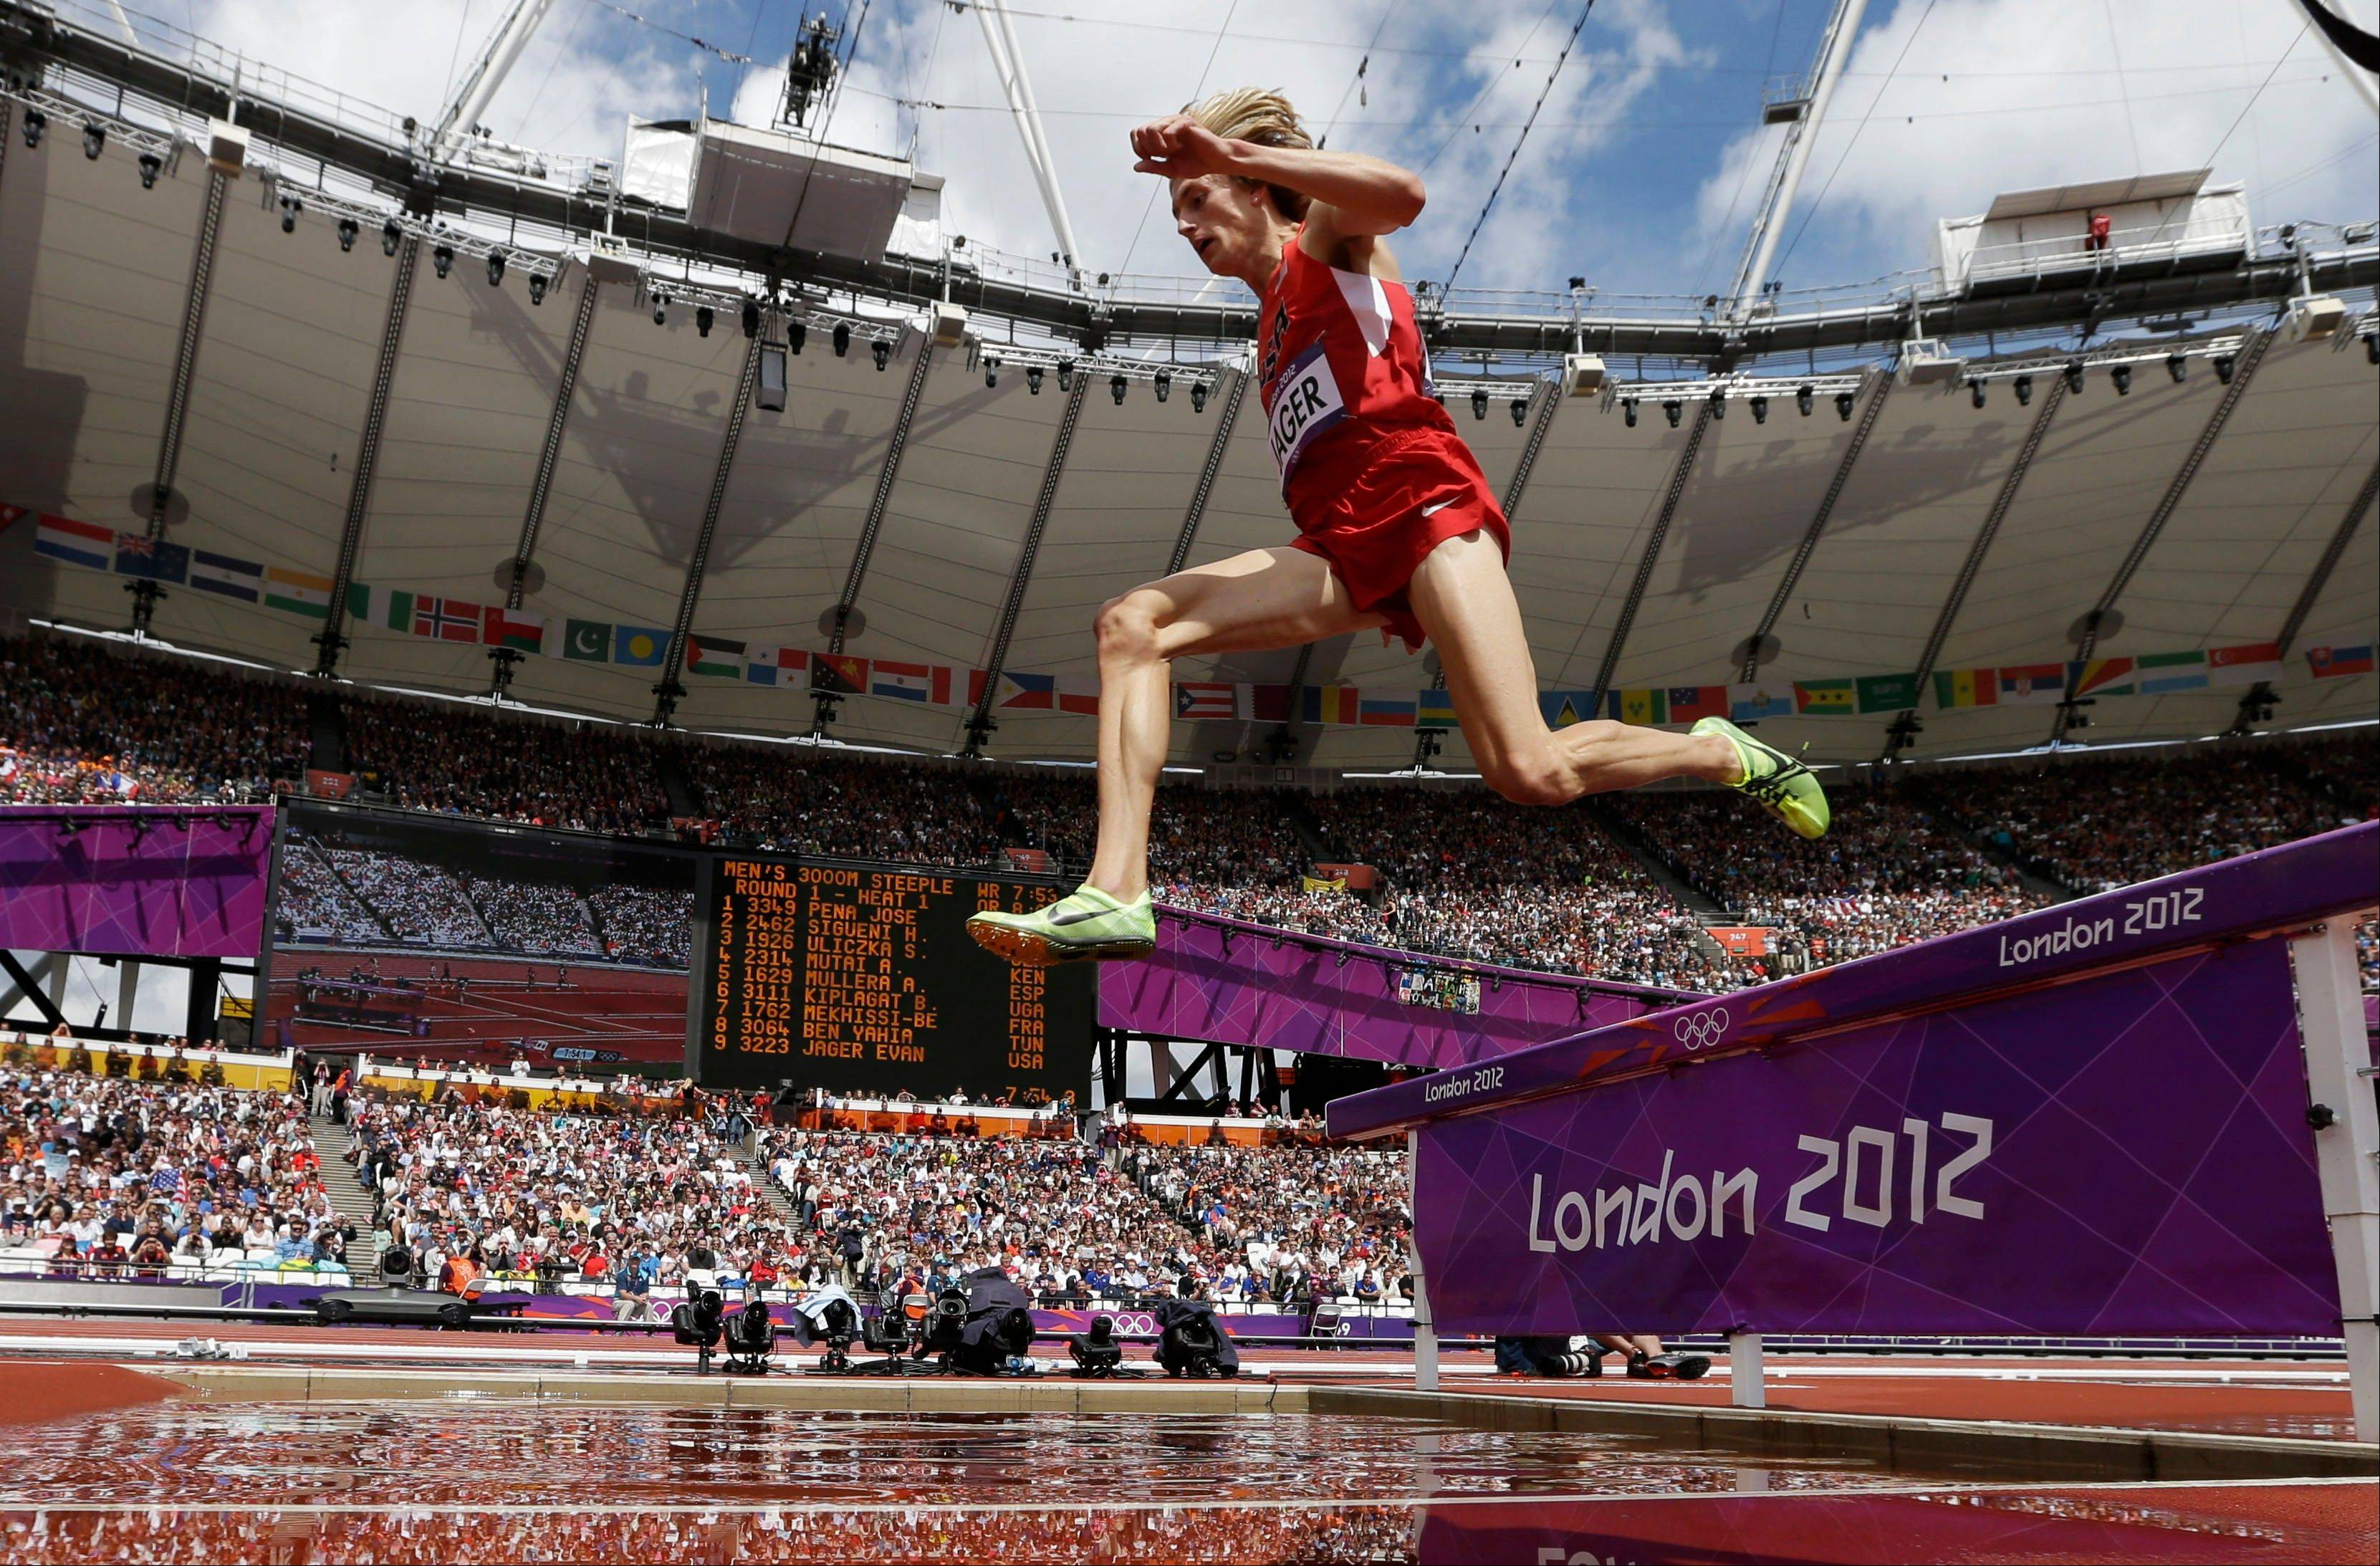 United States' Evan Jager competes in a men's 3000-meter steeplechase heat during the athletics in the Olympic Stadium at the 2012 Summer Olympics, London, Friday, Aug. 3, 2012. (AP Photo/David J. Phillip )